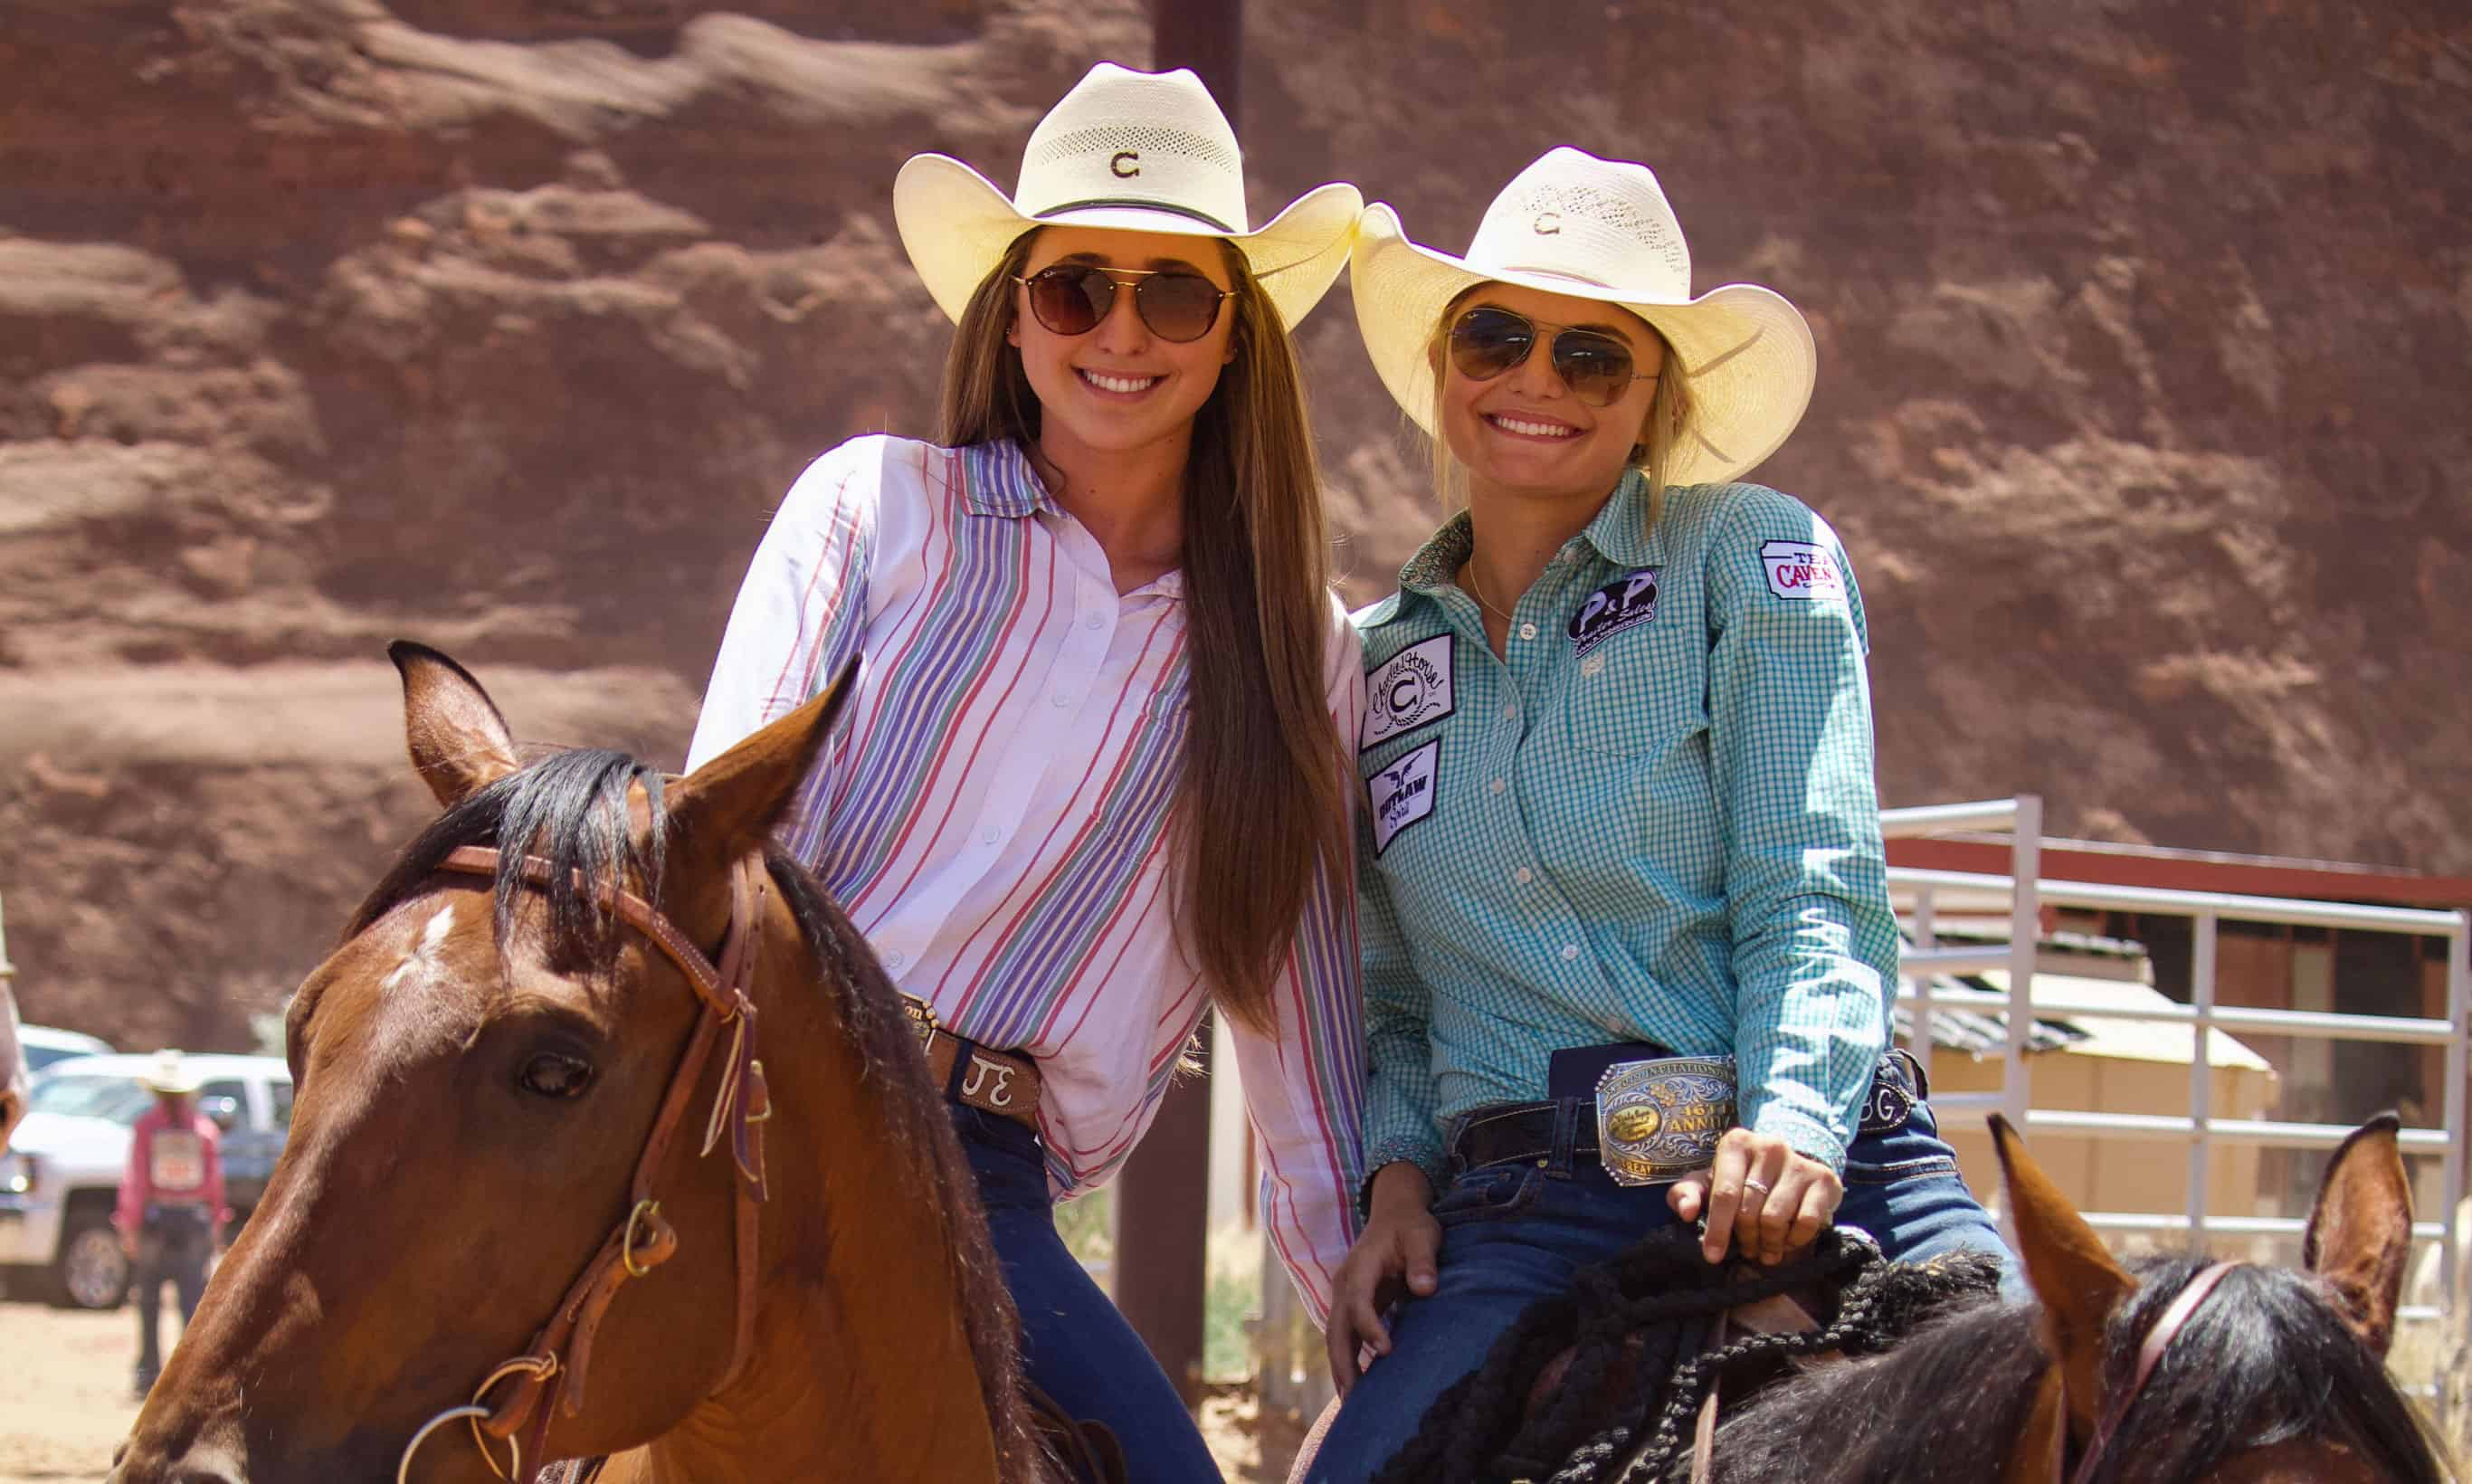 Bradi and Jordi are members of the Cavender's Youth Rodeo Team and both striving to 2019 state titles